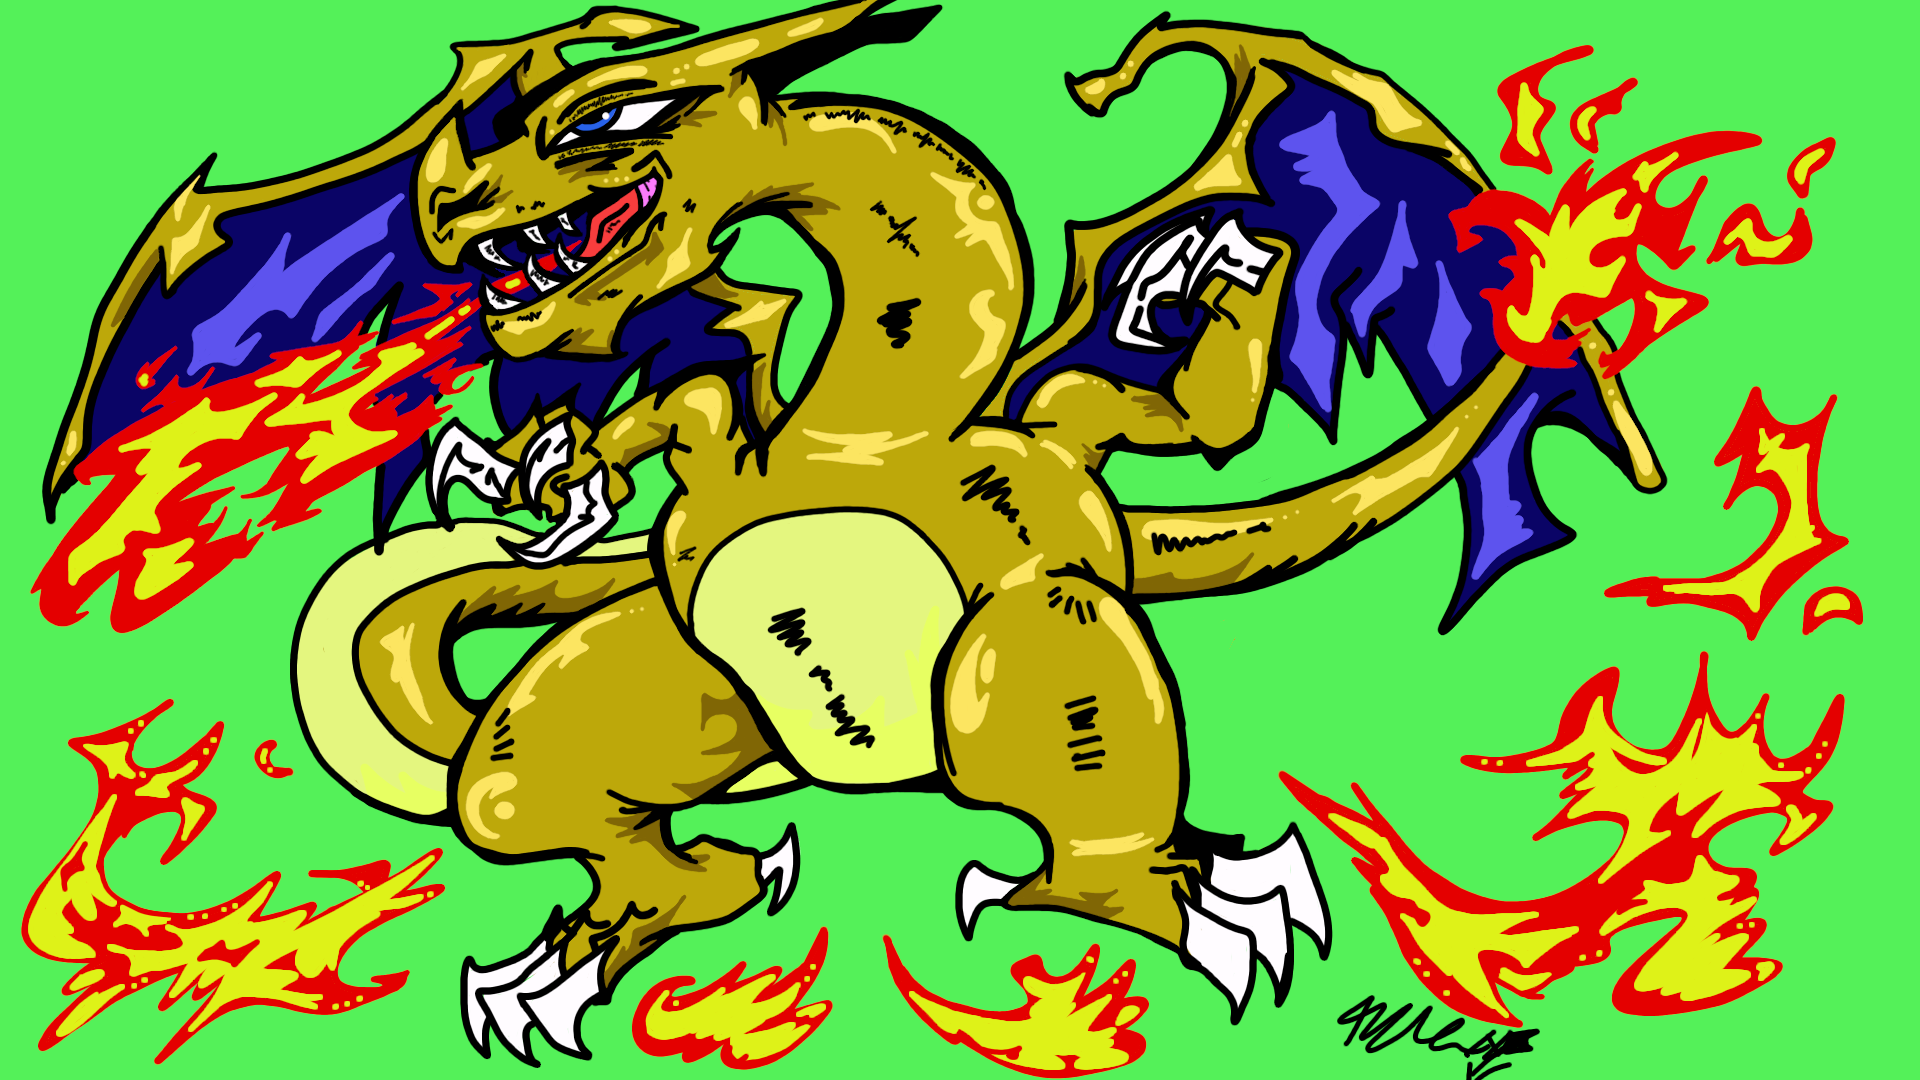 A pissed off charizard